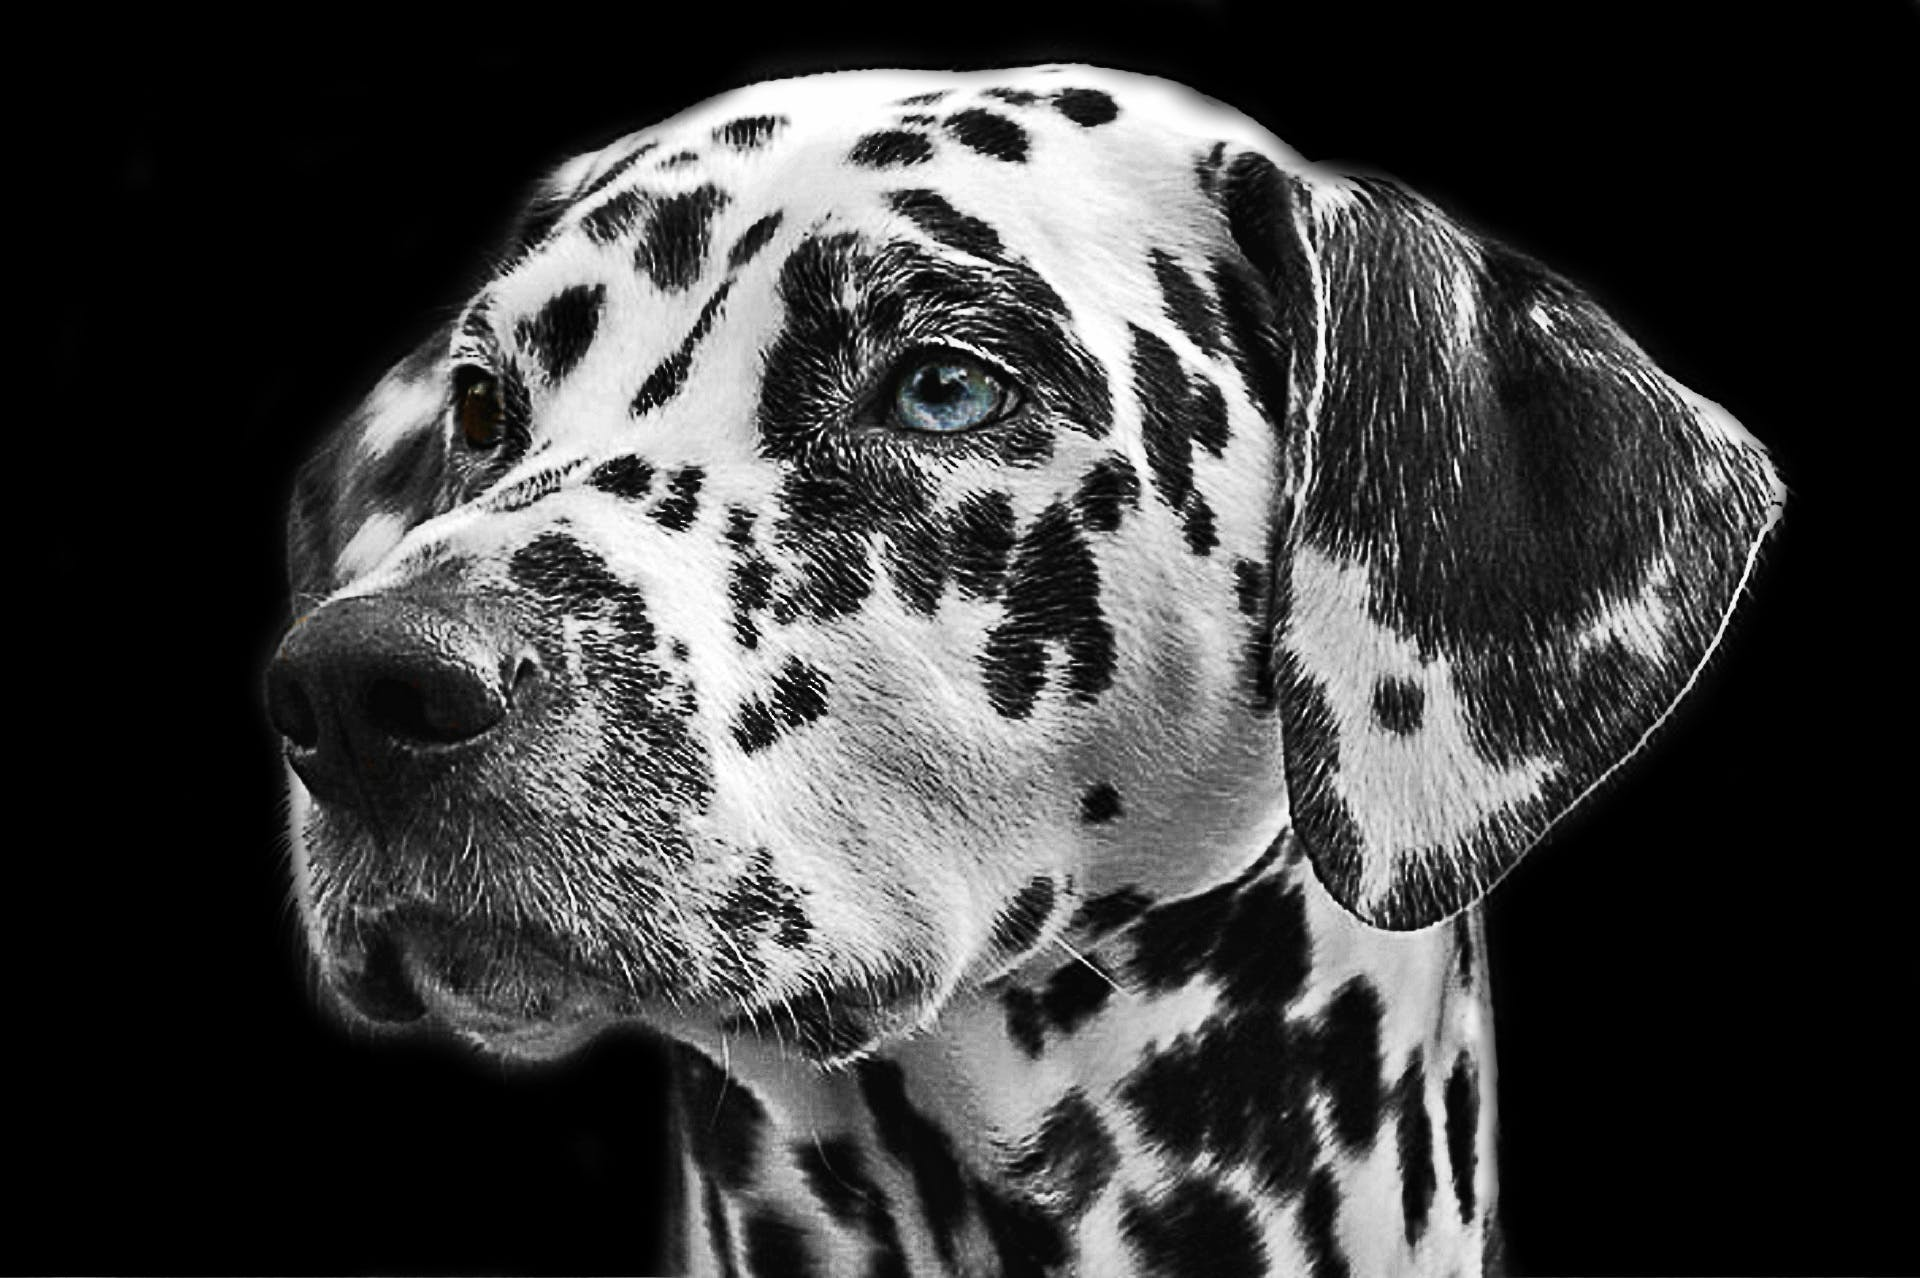 Adult Dalmatian Grayscale Photography